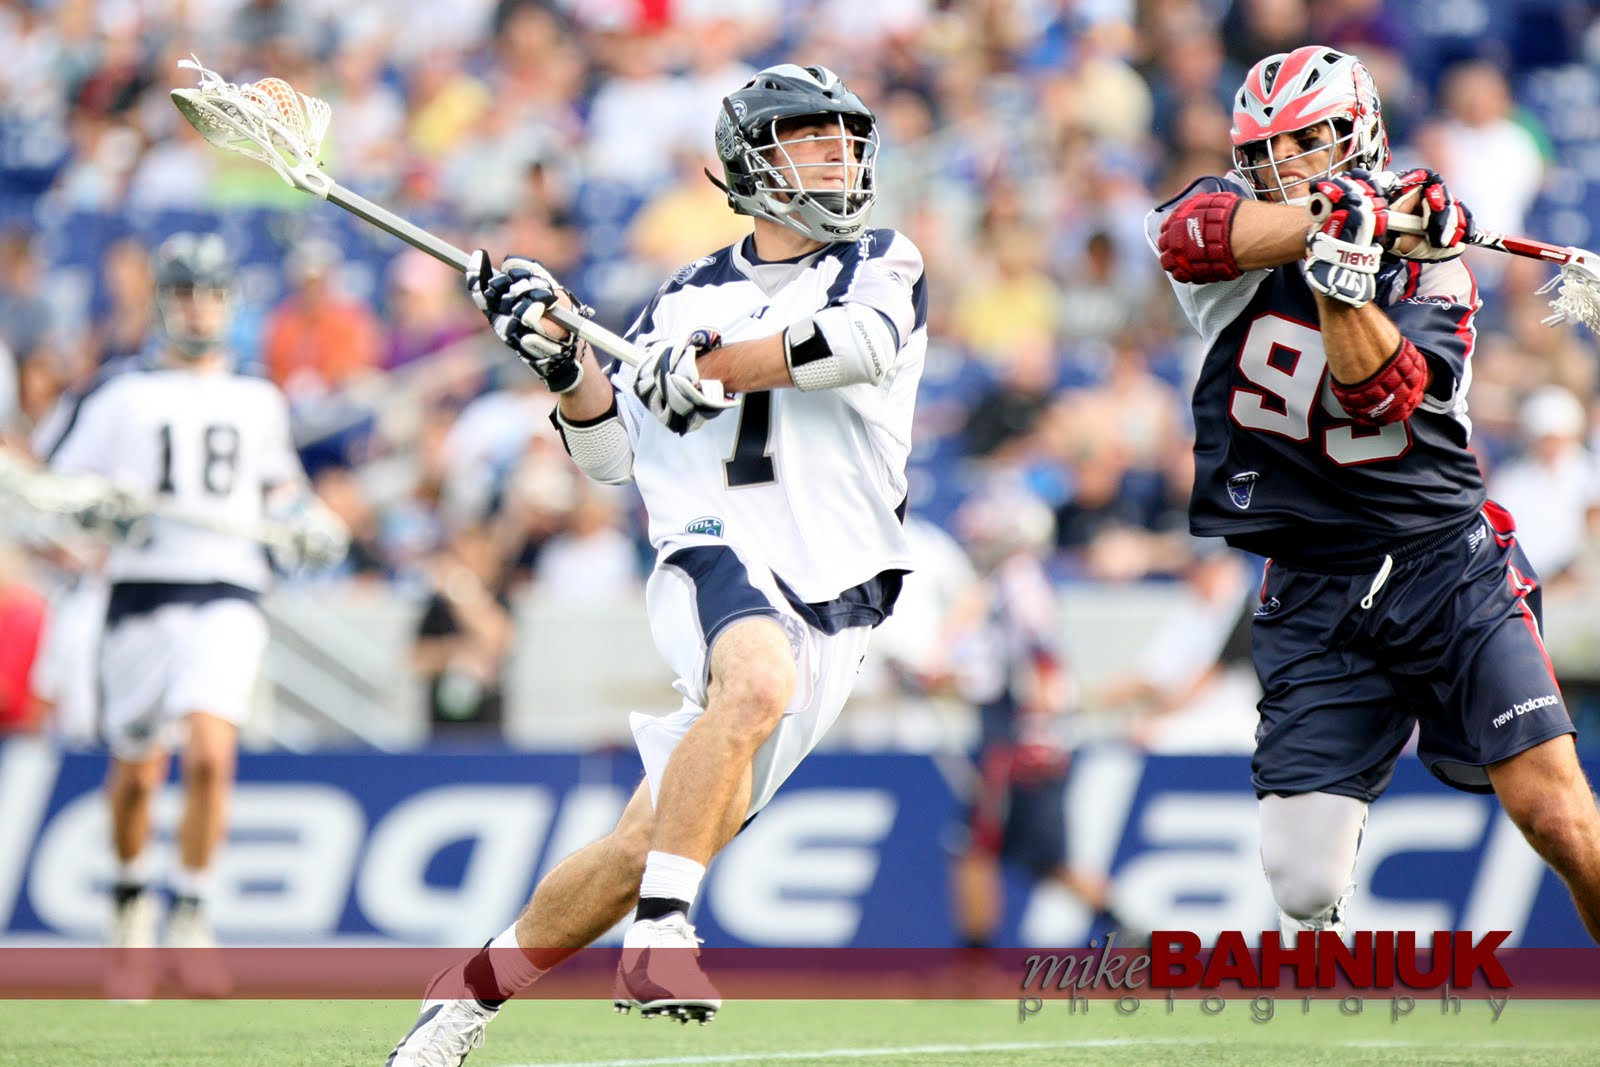 Mike Bahniuk's Game Day: Pro Lacrosse Saturday Night